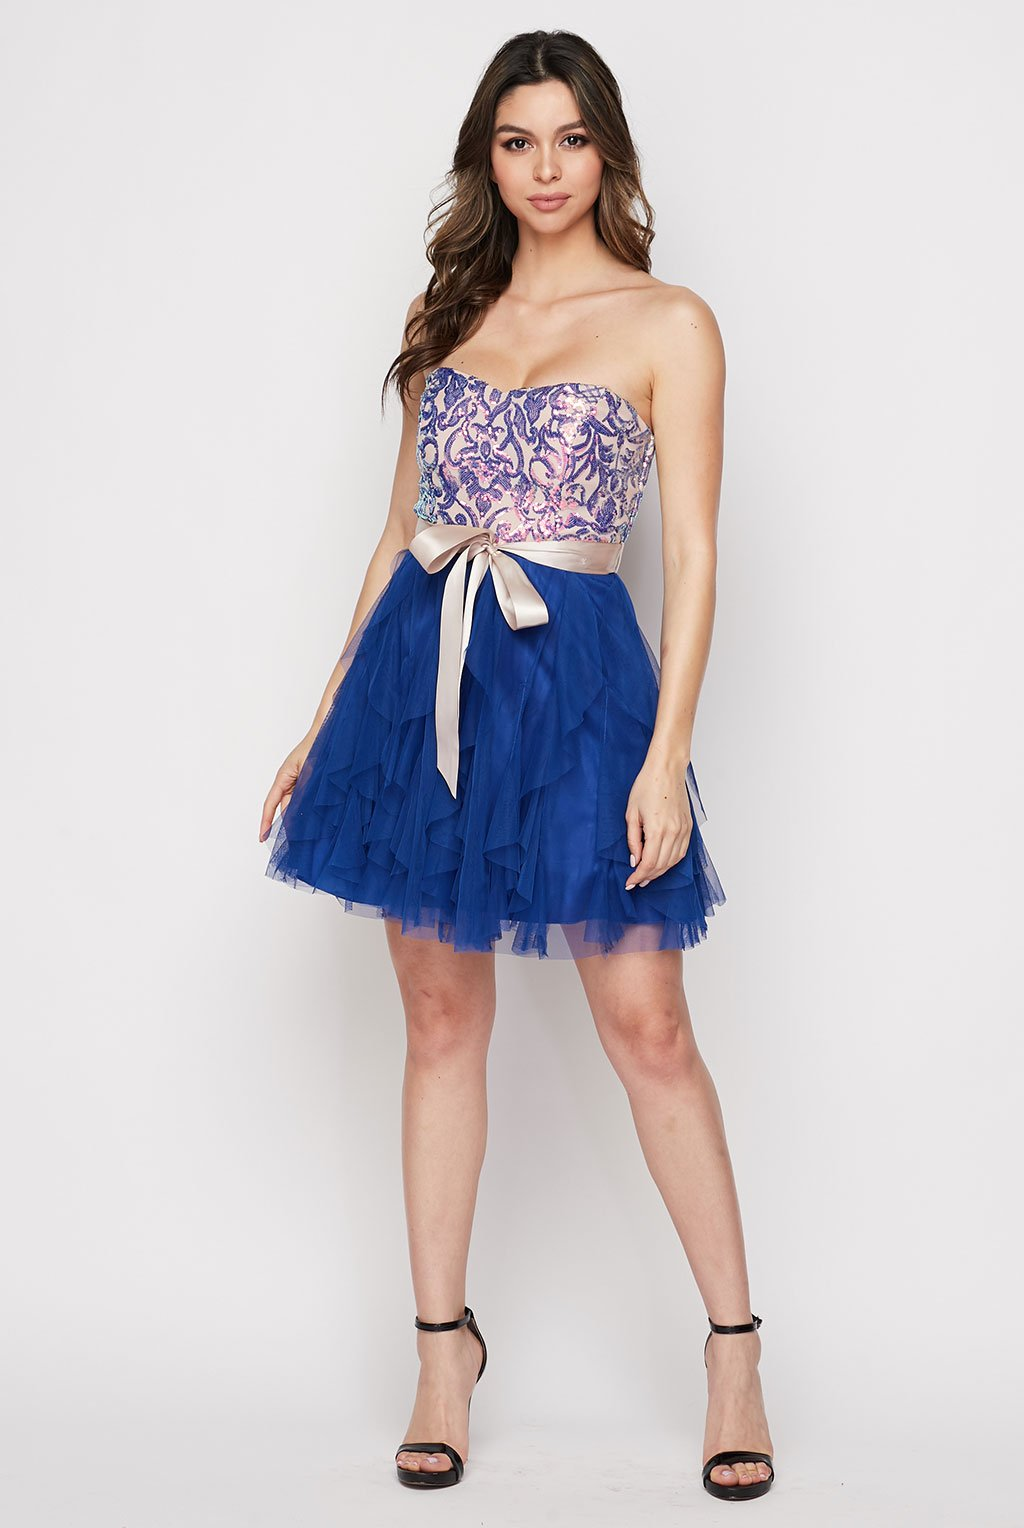 Teeze Me | Strapless Sequin Corkscrew Ruffle Dress | Royal